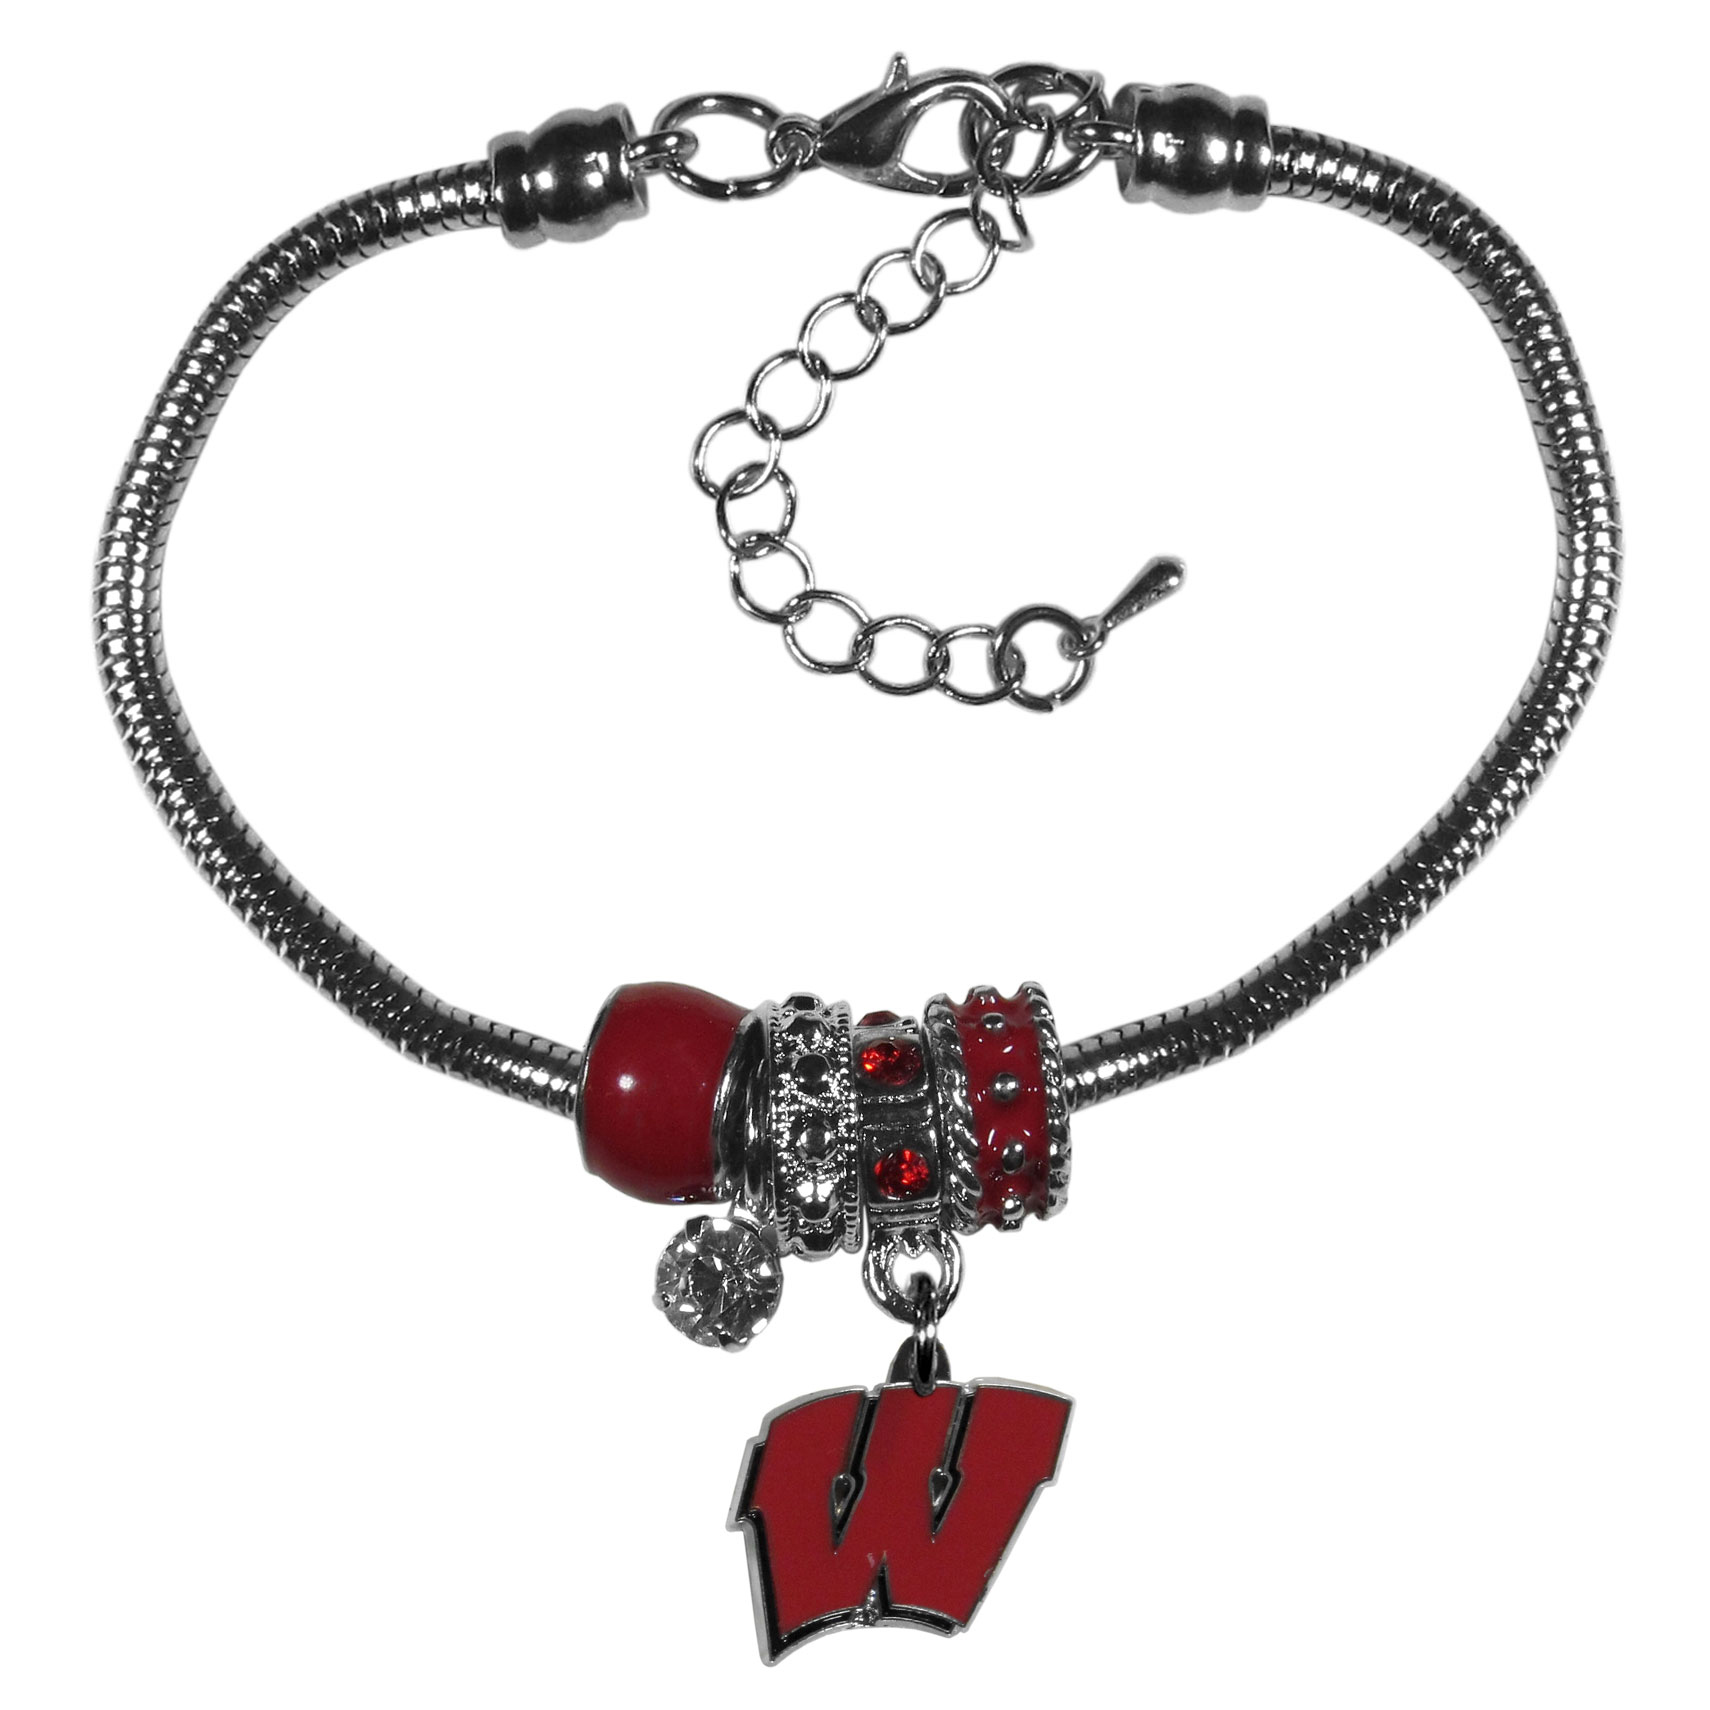 Wisconsin Badgers Euro Bead Bracelet - We have combined the wildly popular Euro style beads with your favorite team to create our  Wisconsin Badgers bead bracelet. The 7.5 inch snake chain with 2 inch extender features 4 Euro beads with enameled team colors and rhinestone accents with a high polish, nickel free charm and rhinestone charm. Perfect way to show off your team pride.